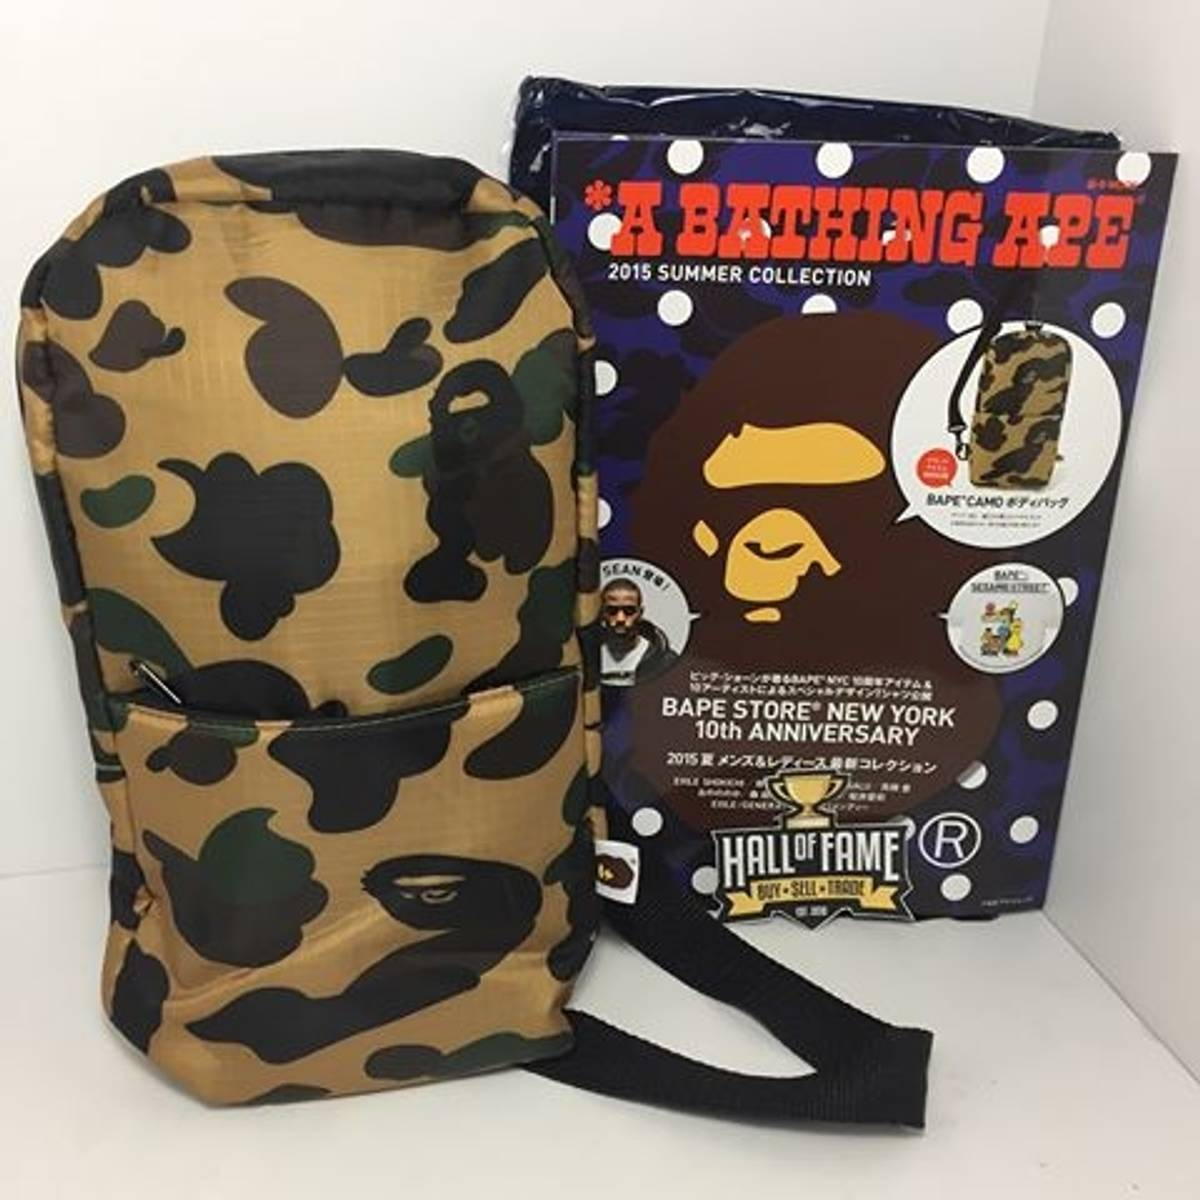 7e20b24f708d Bape Crossbody Bag Size one size - Bags   Luggage for Sale - Grailed